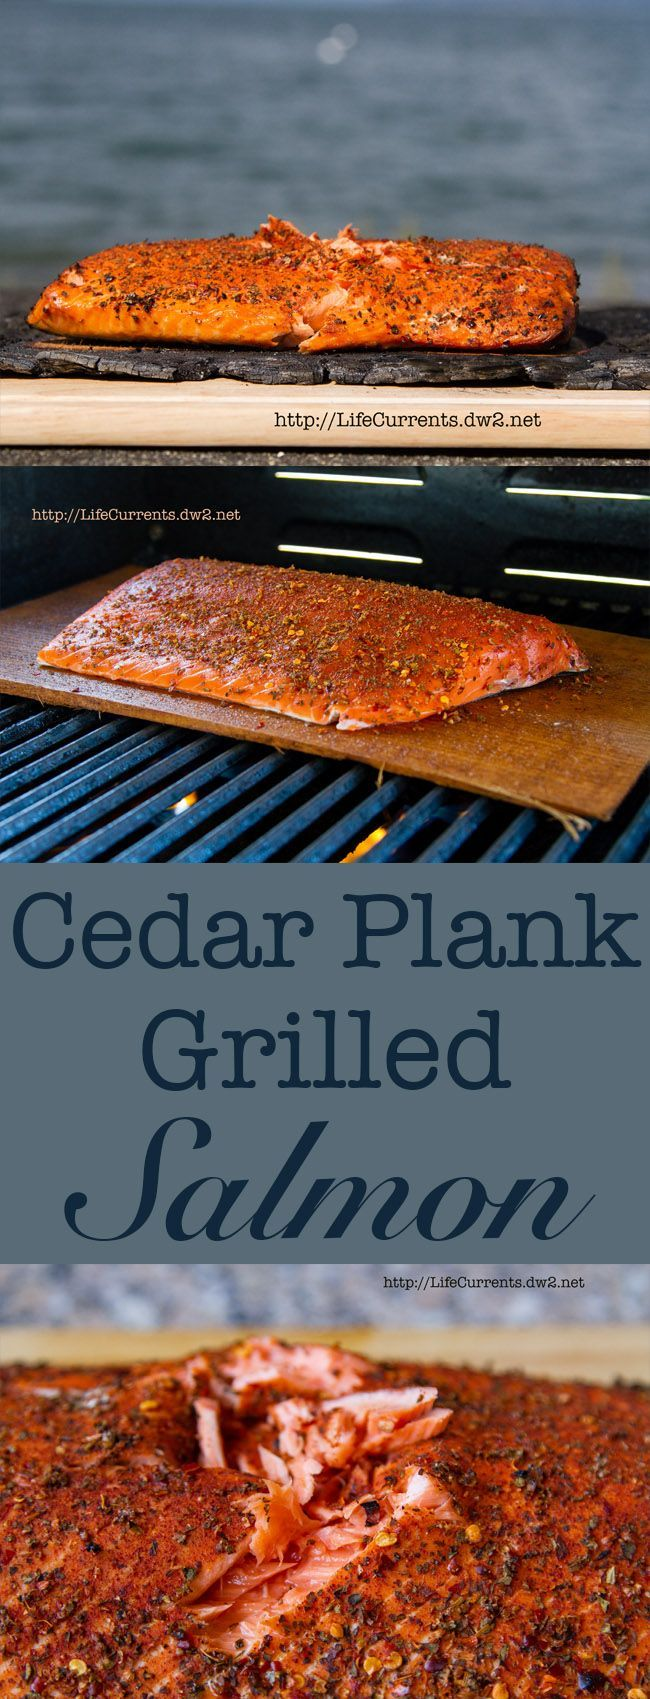 Cedar Plank Grilled Salmon - Life Currents